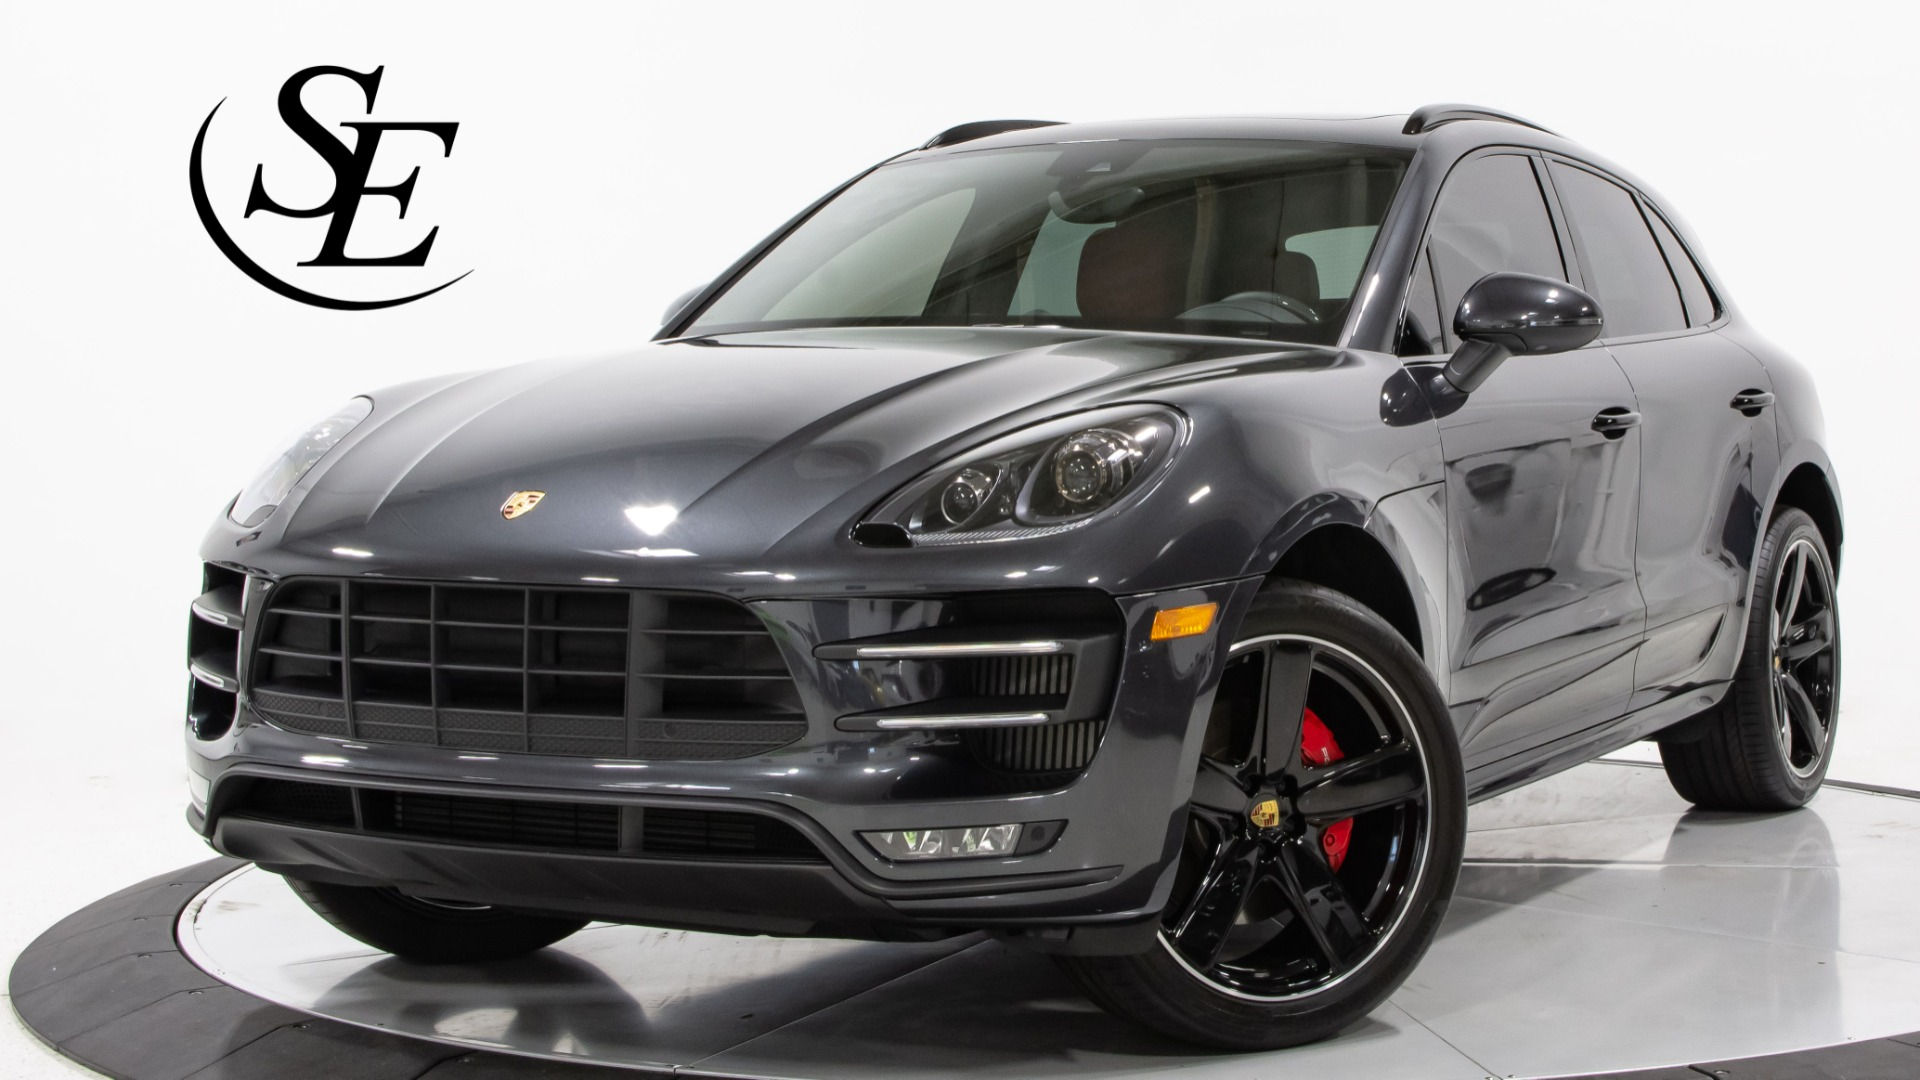 2018 Porsche Macan Turbo Stock 22690